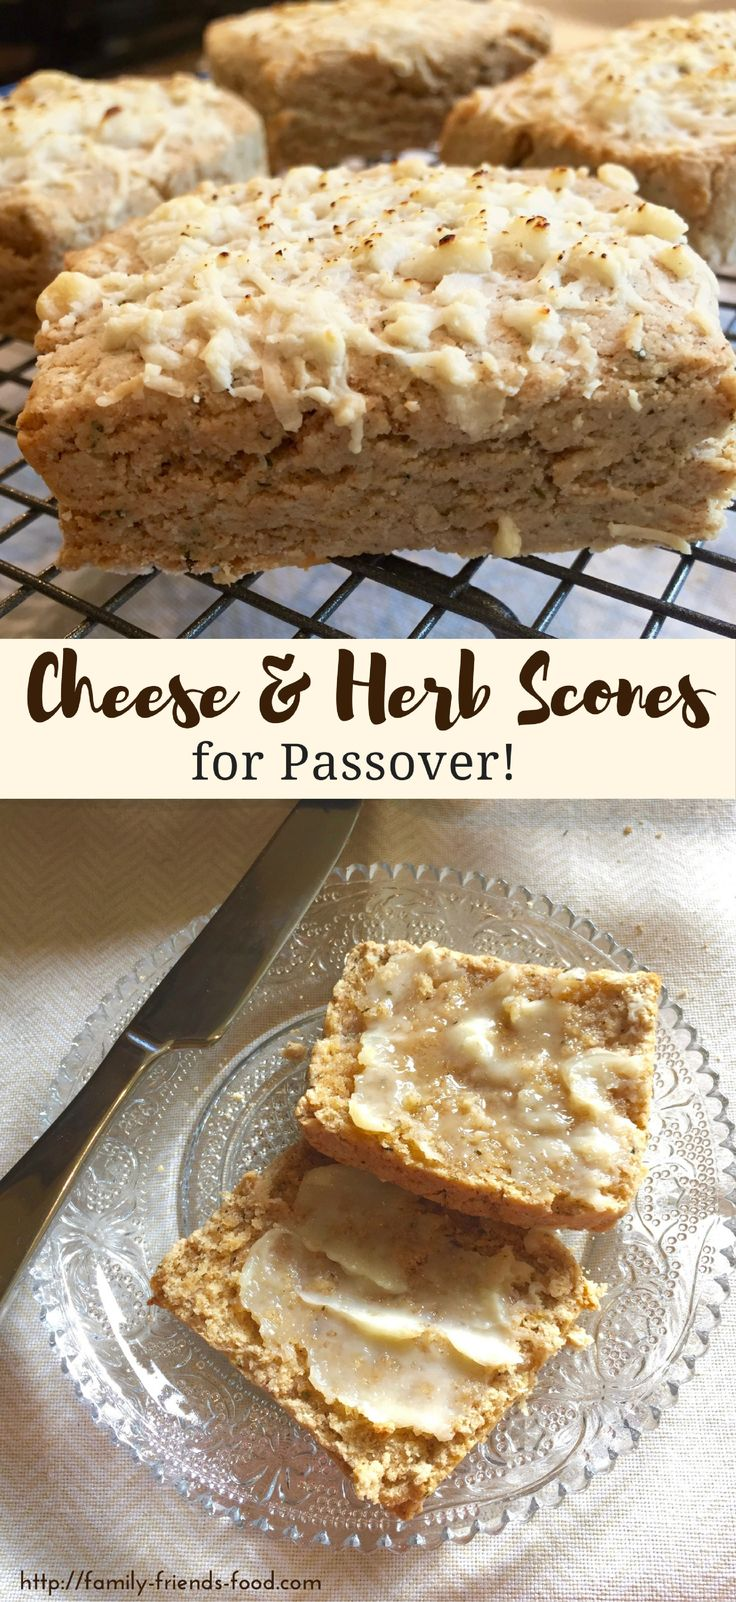 These tasty, cheesy savoury scones have a light, flaky texture & a delicious flavour, & are completely kosher for Passover! Enjoy warm with plenty of butter.  #passover #pesach #kosher